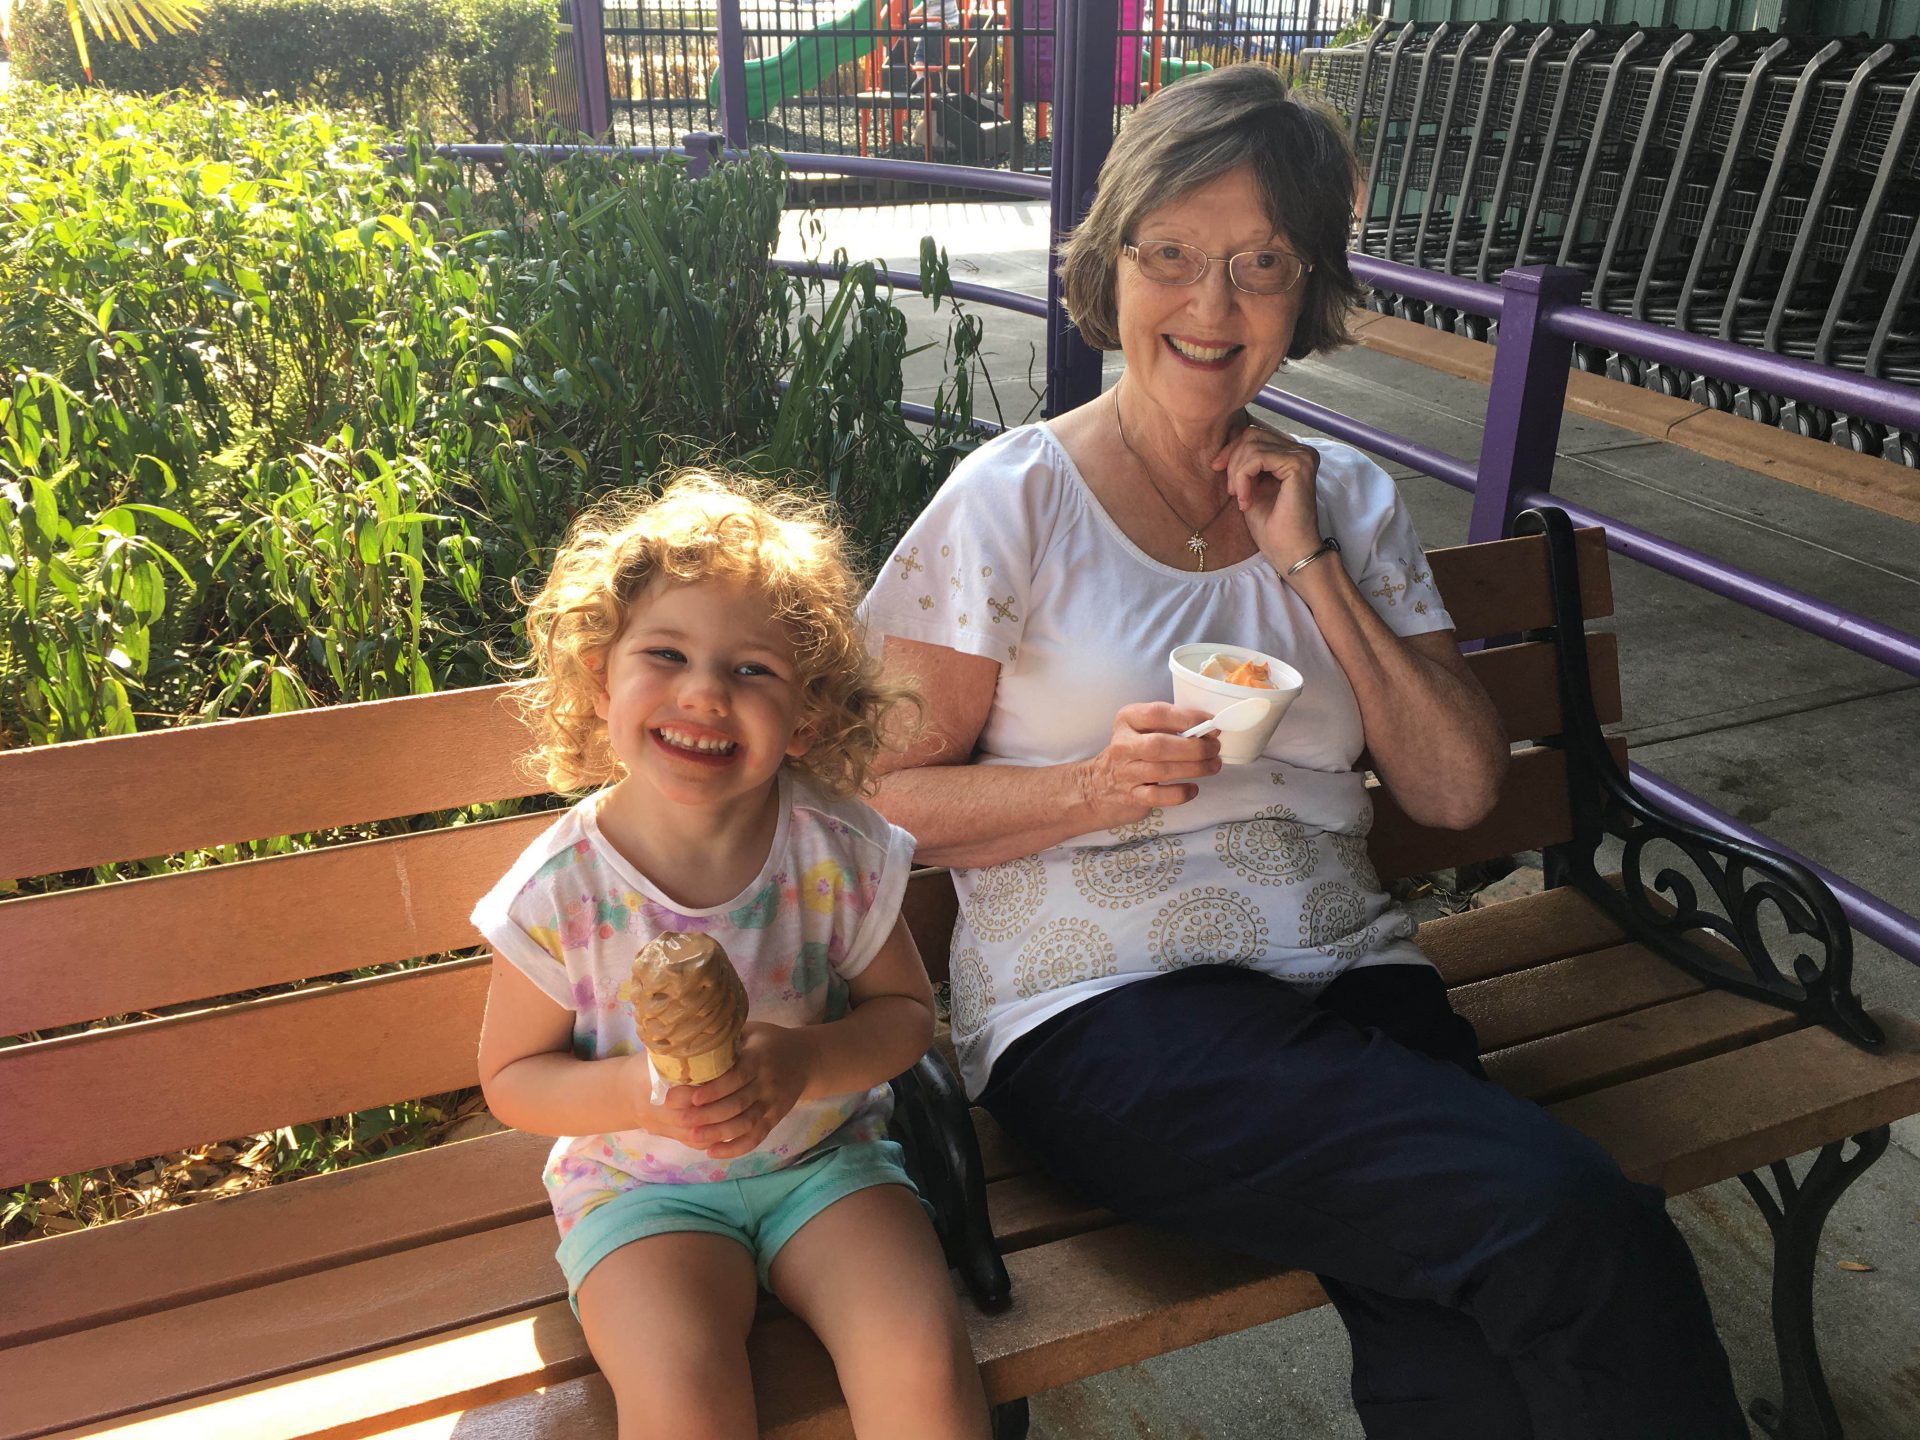 Ice cream treats with Mimi